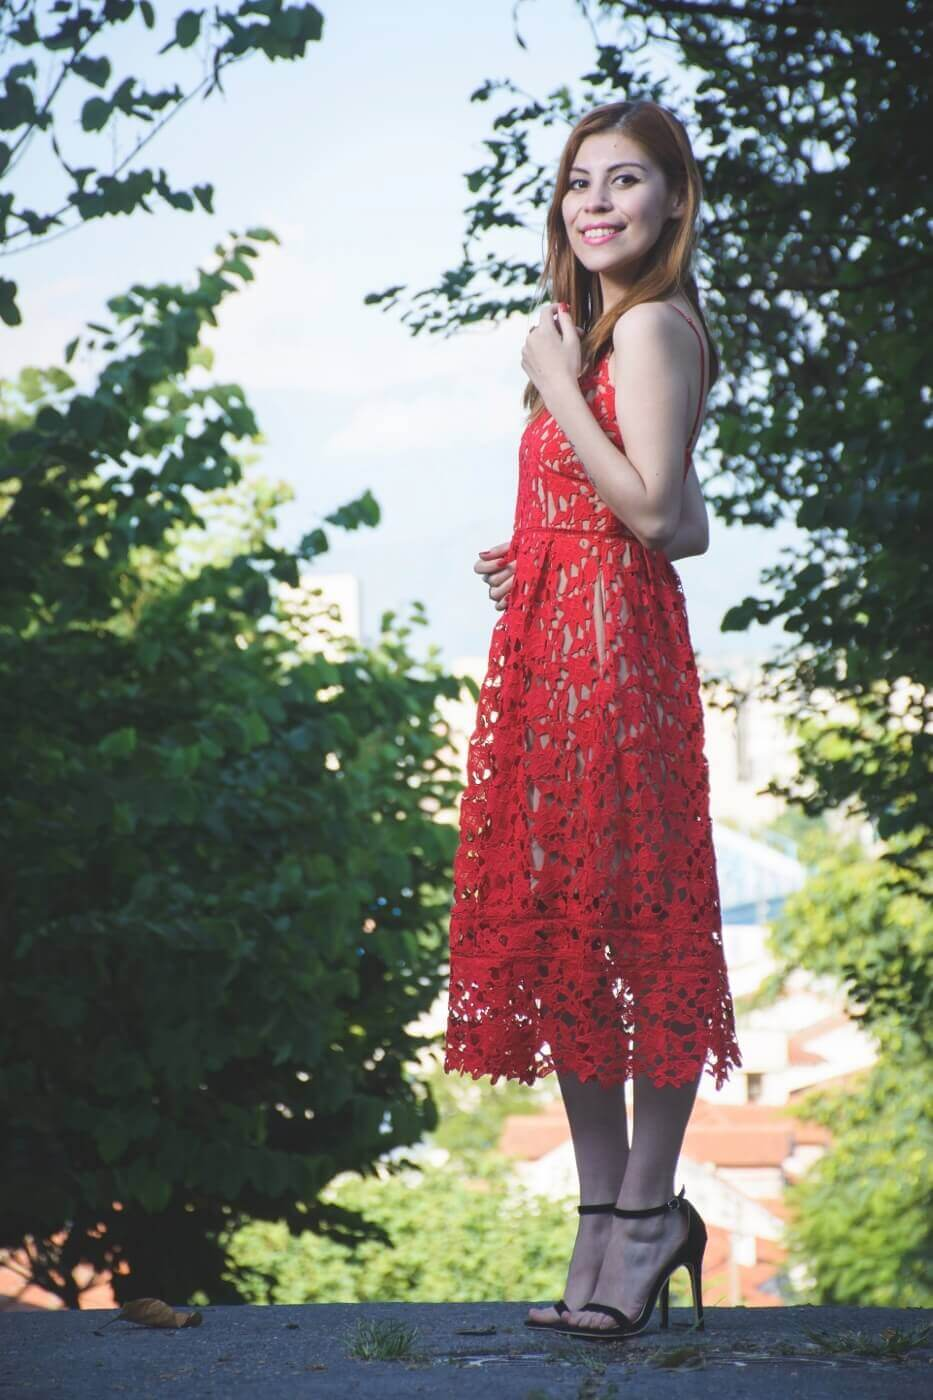 zaful red lace crochet midi lenght dress valentines day outfit ideas summer 2017 trends deborah ferrero style by deb13